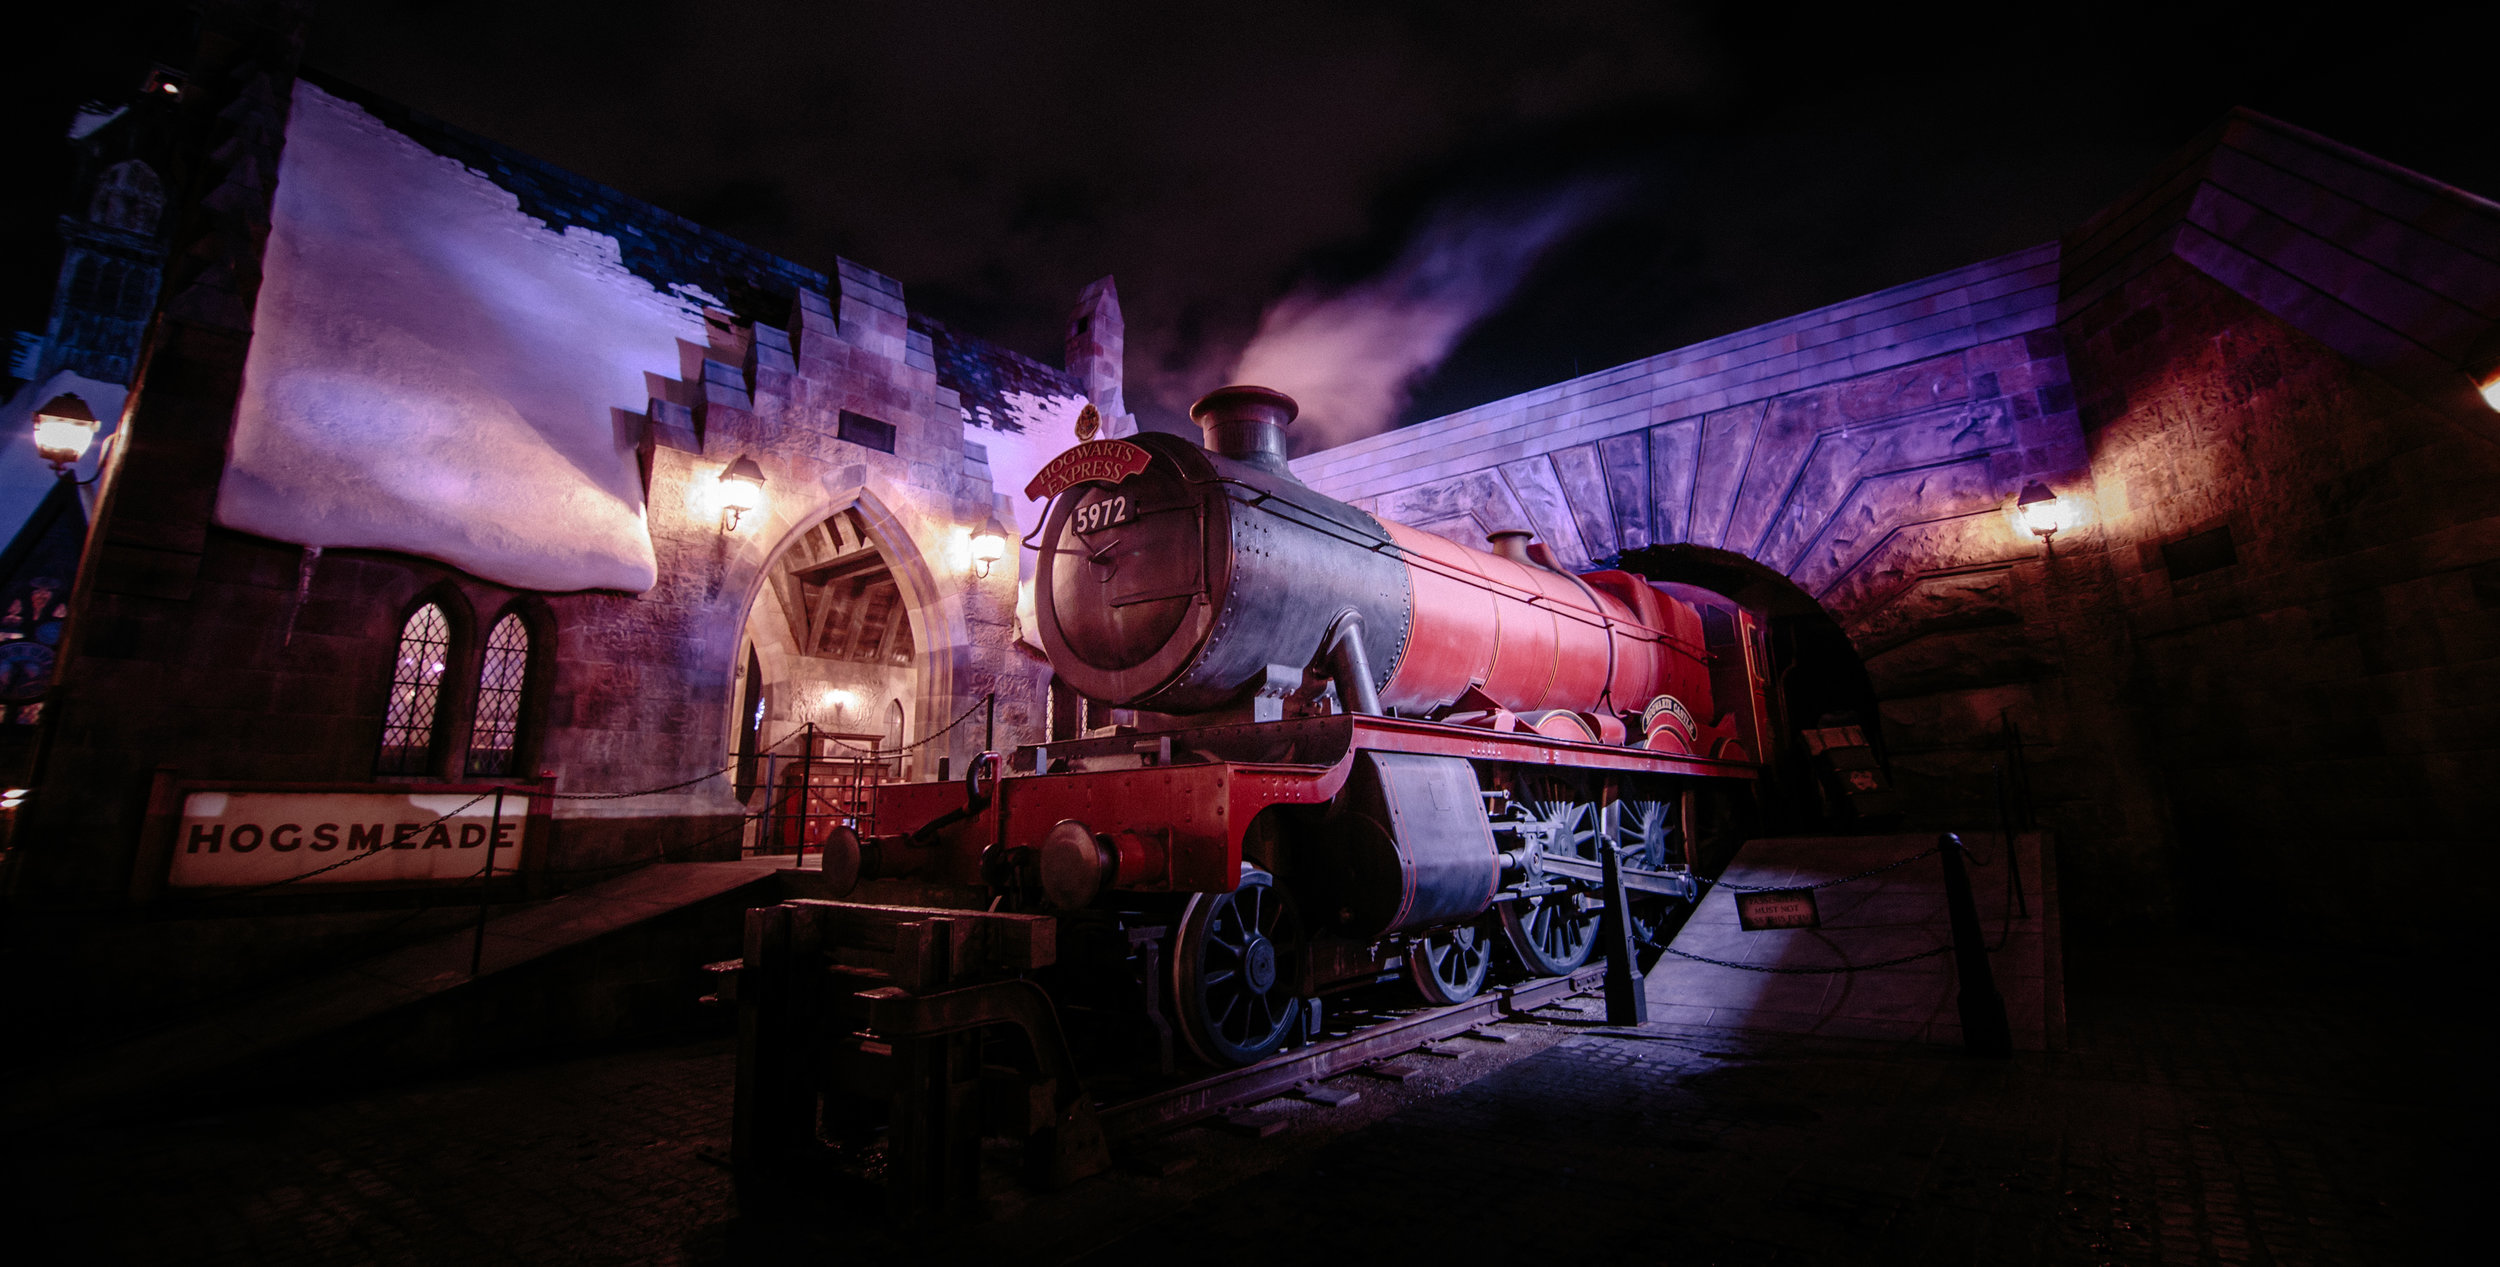 Did you know? - With a Park-to-Park ticket, you can travel using the Hogwarts™ Express between King's Cross Station in London at Universal Studios Florida™ and Hogsmeade™ Station in Universal's Islands of Adventure™ to visit both sections of The Wizarding World of Harry Potter™.